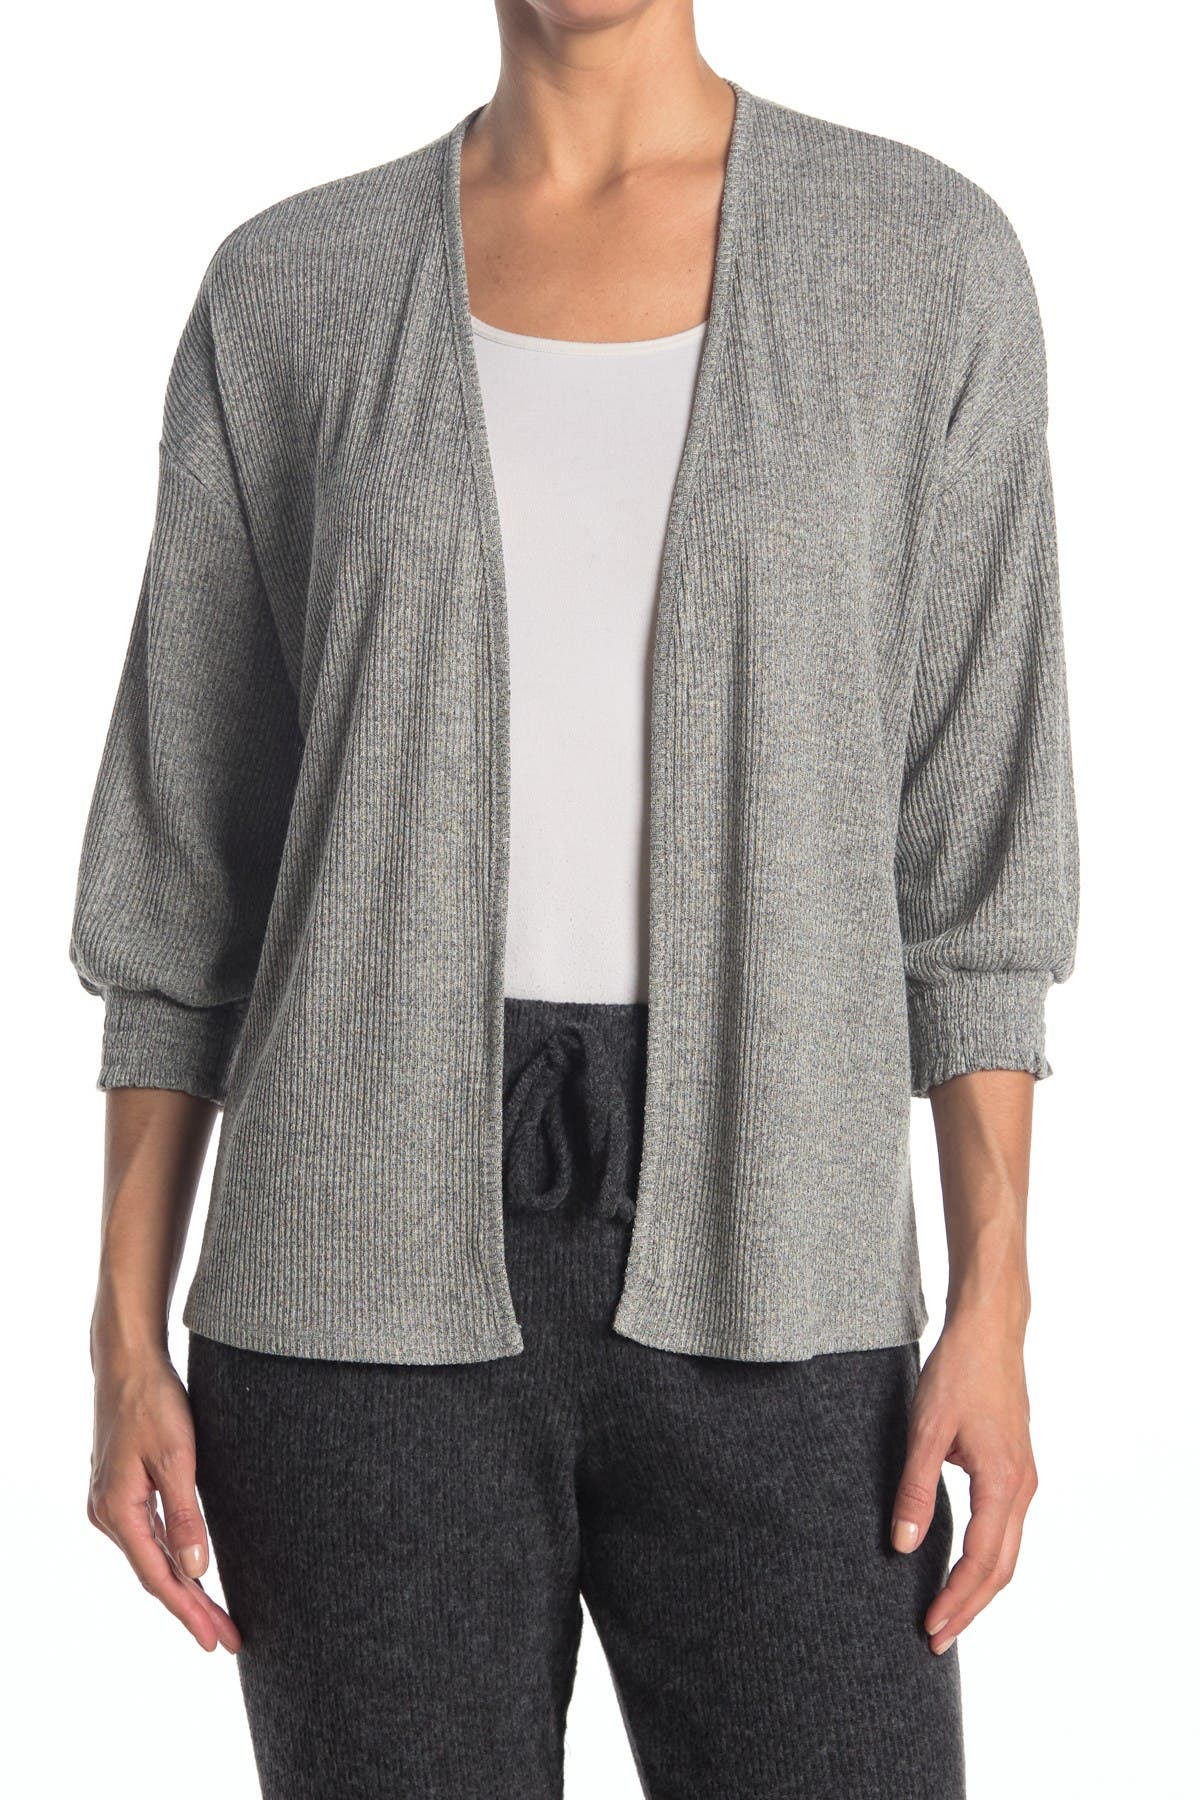 Image of ECLAIR Ribbed Hacci Knit Cardigan